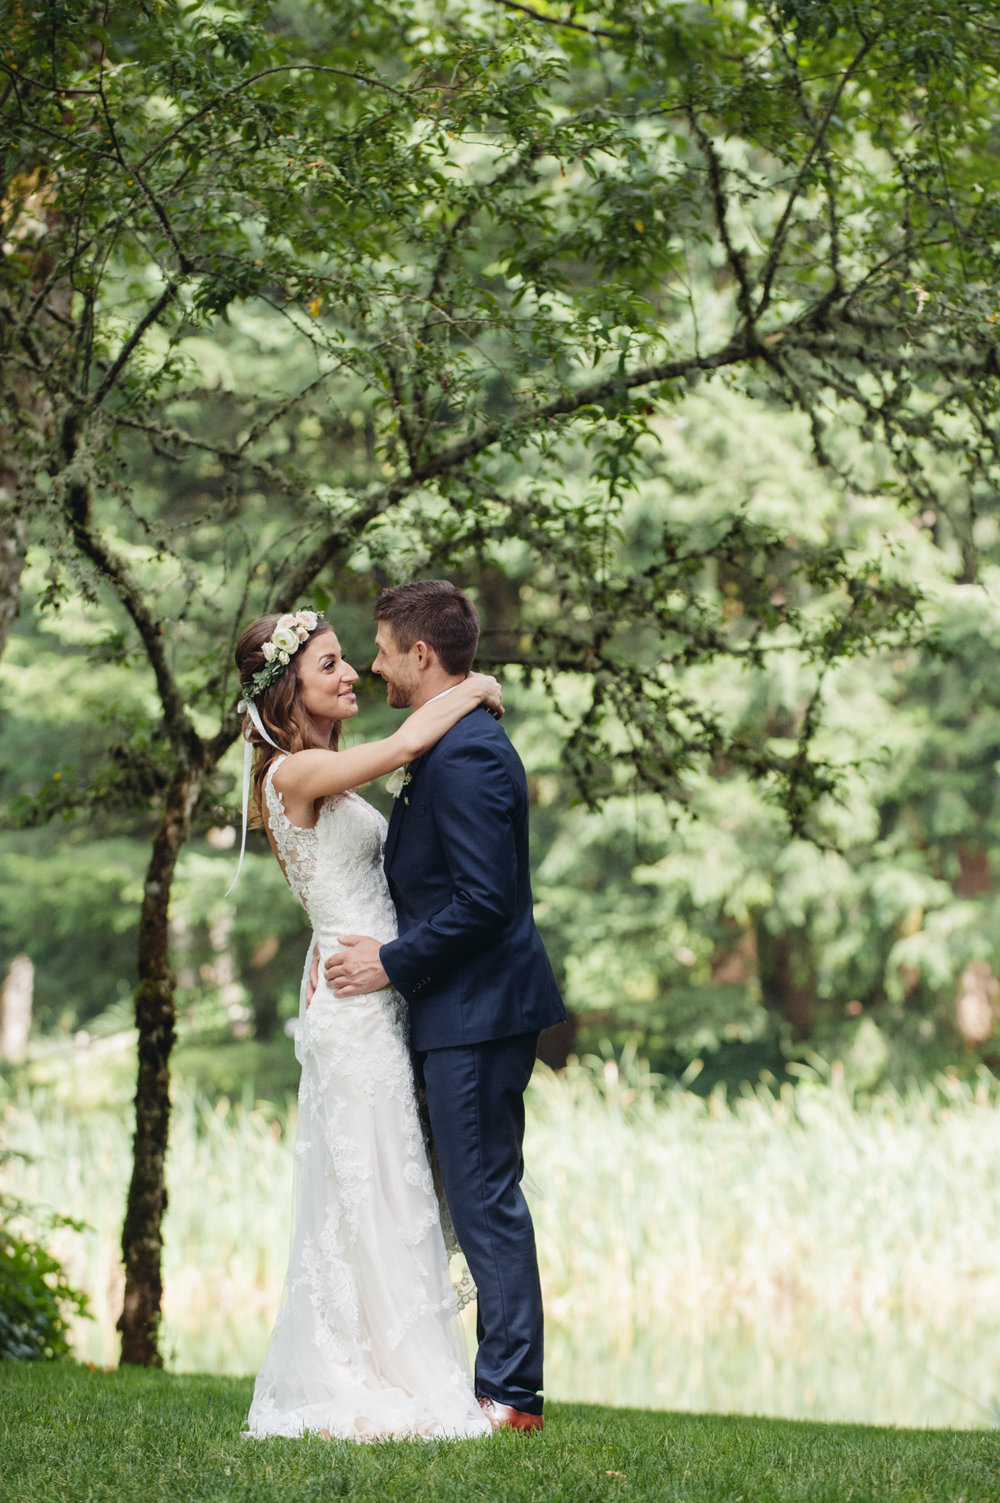 Bridalbliss.com | Columbia Gorge Wedding | Oregon Event Planning and Design | Powers Studios